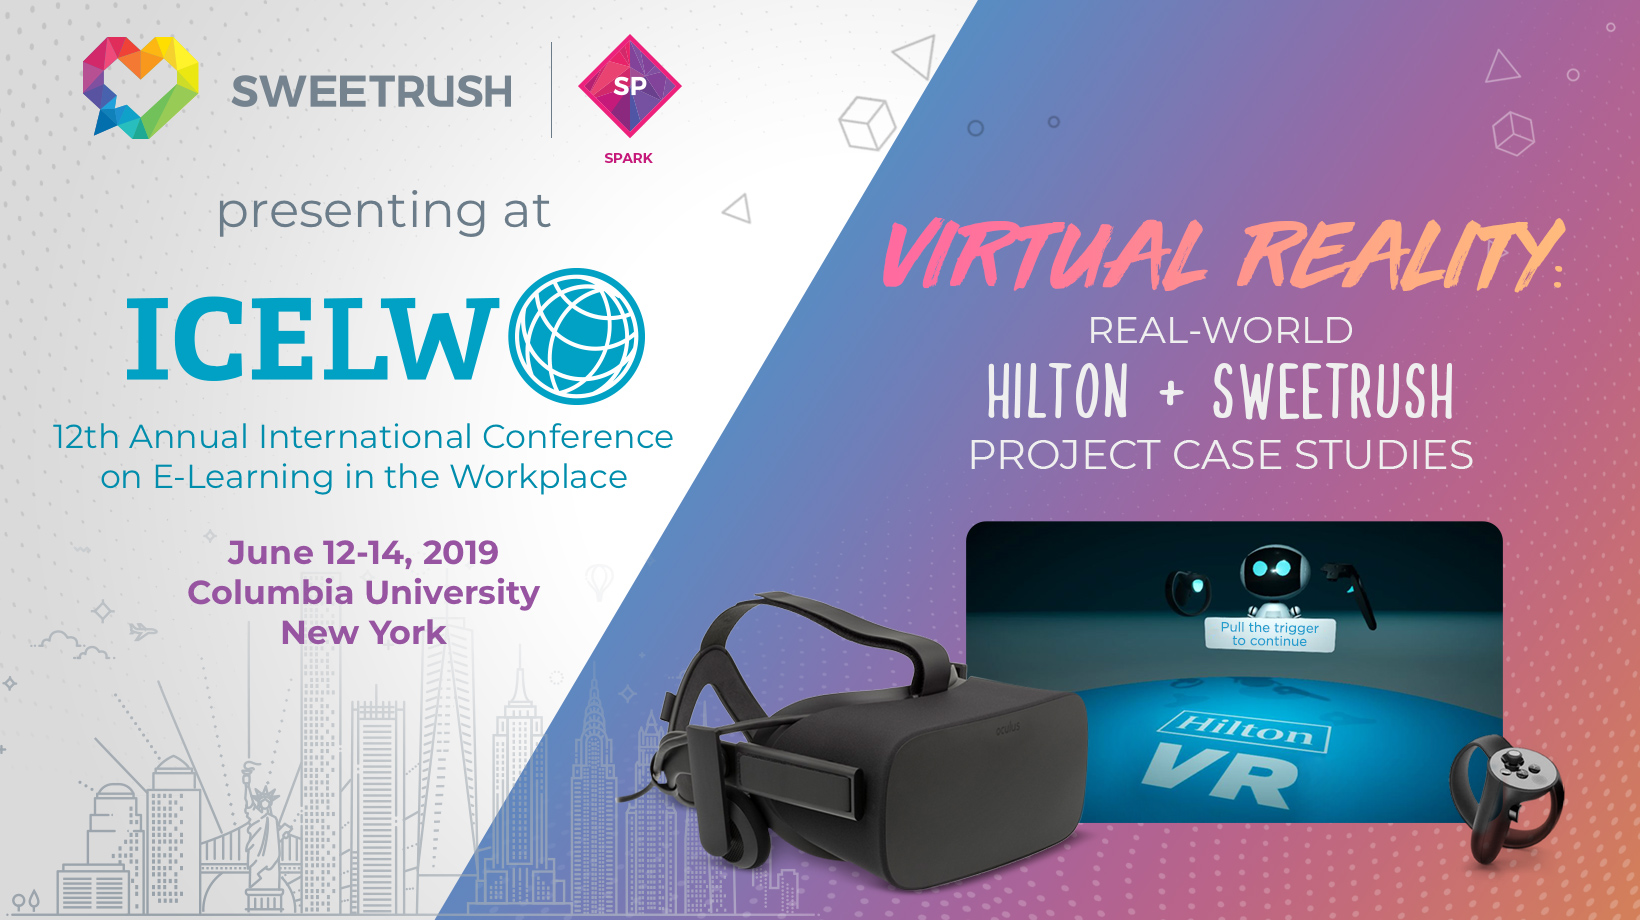 SweetRush to Present VR Case Studies at eLearning Conference